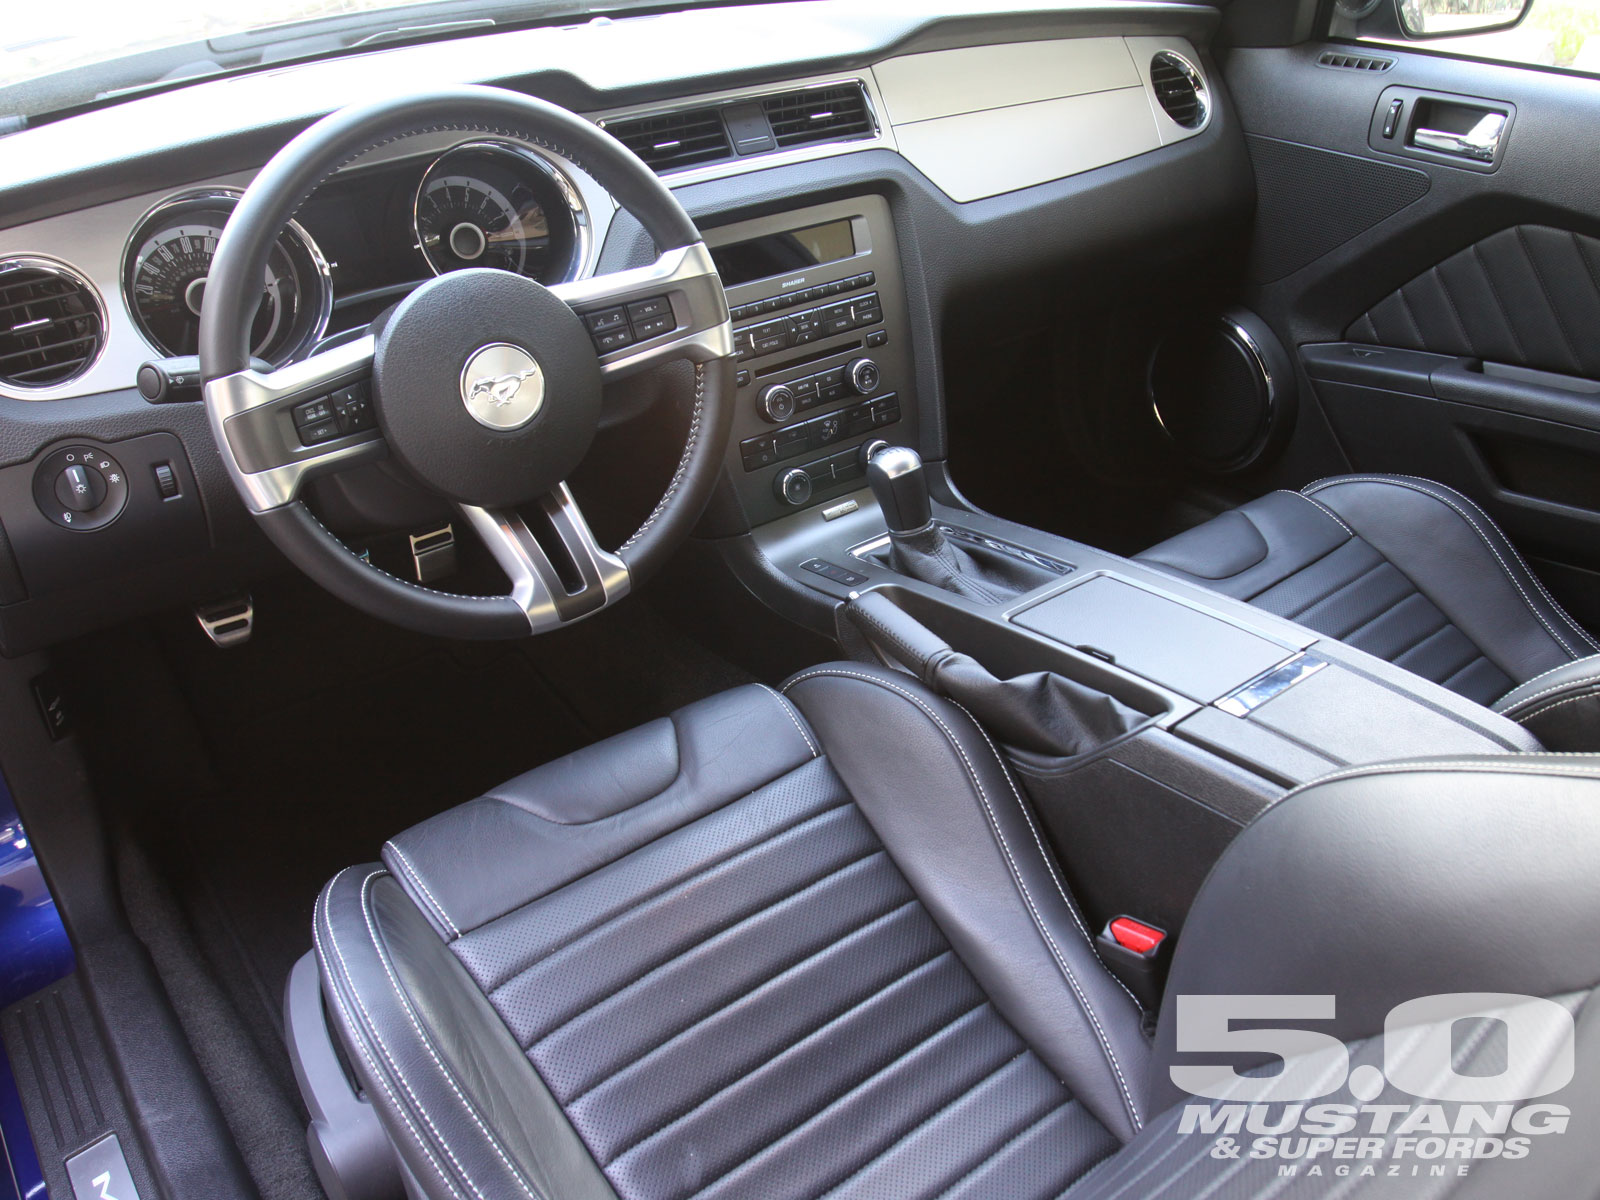 2013 Ford Mustang Gt Interior 7sm5ezwm Engine Information